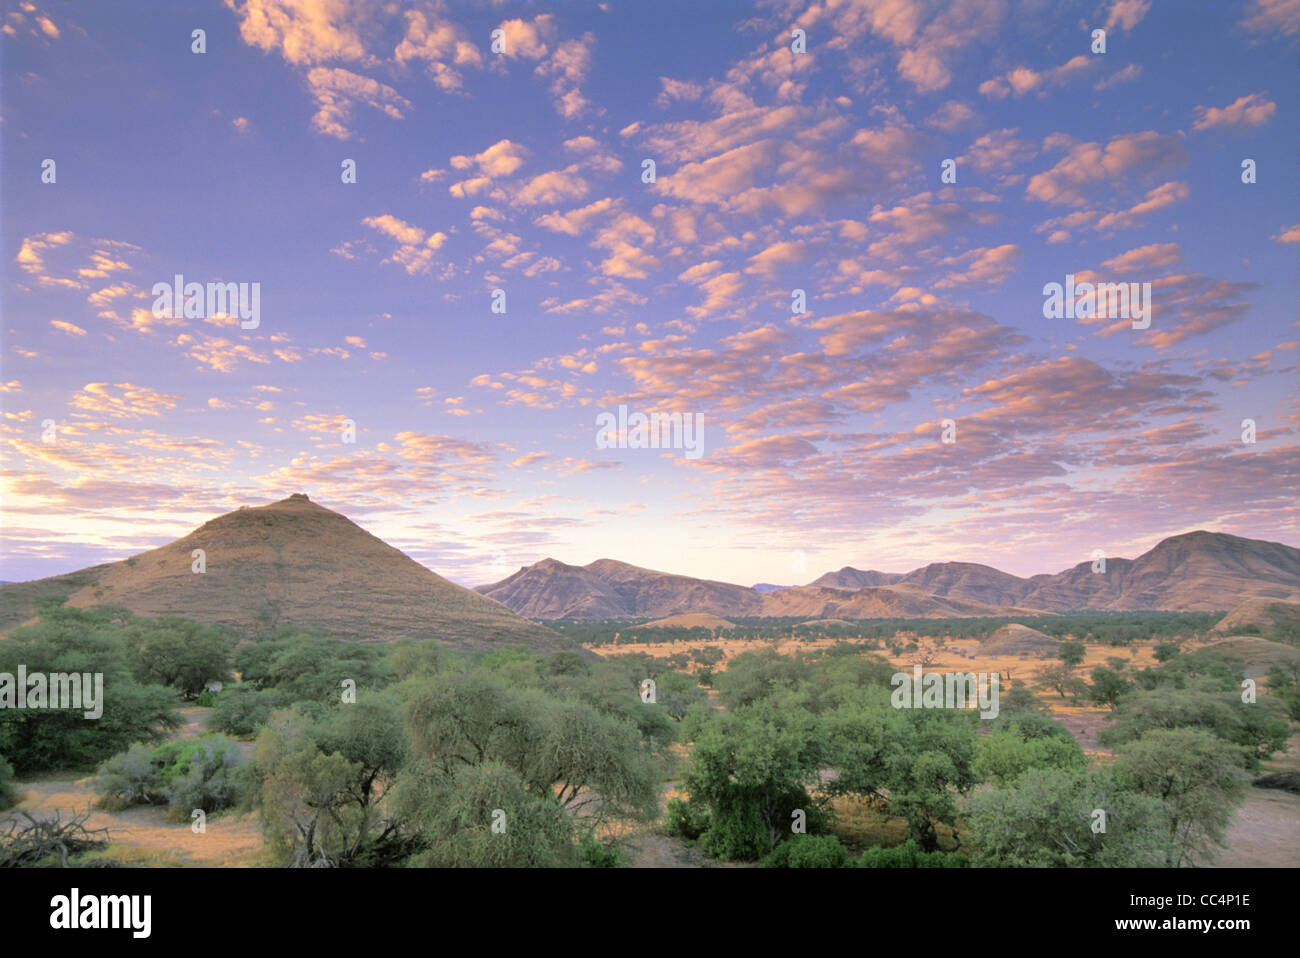 Early Evening in Damarland - Stock Image